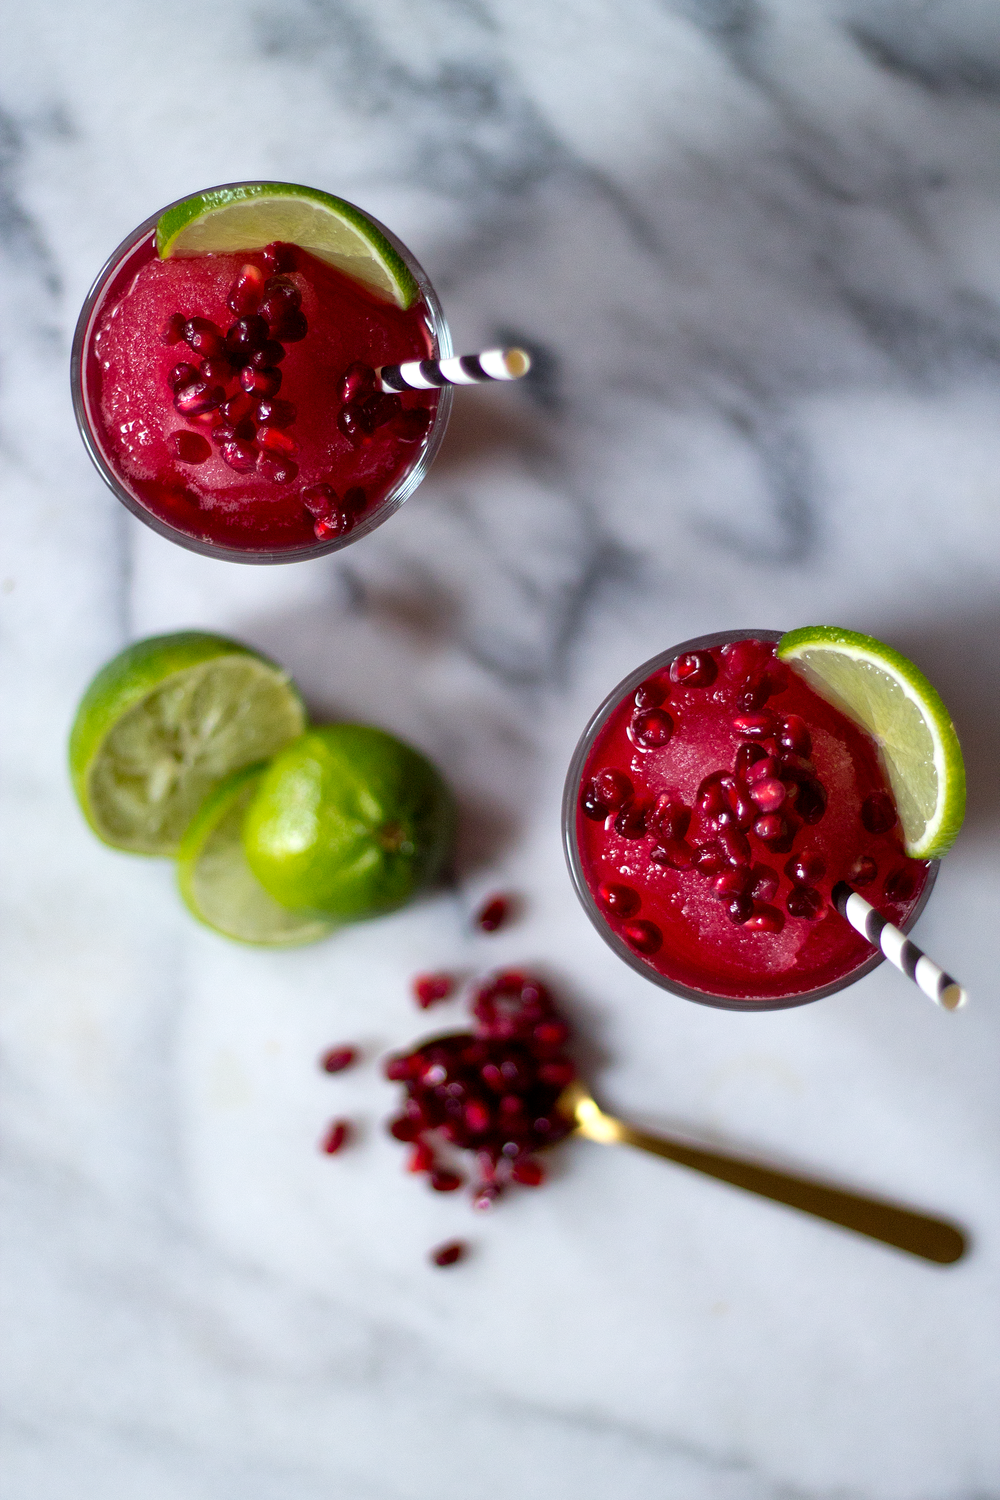 Pomegranate, Gin, and Lime Juice thrown into a blender. Unusually Lovely Blog